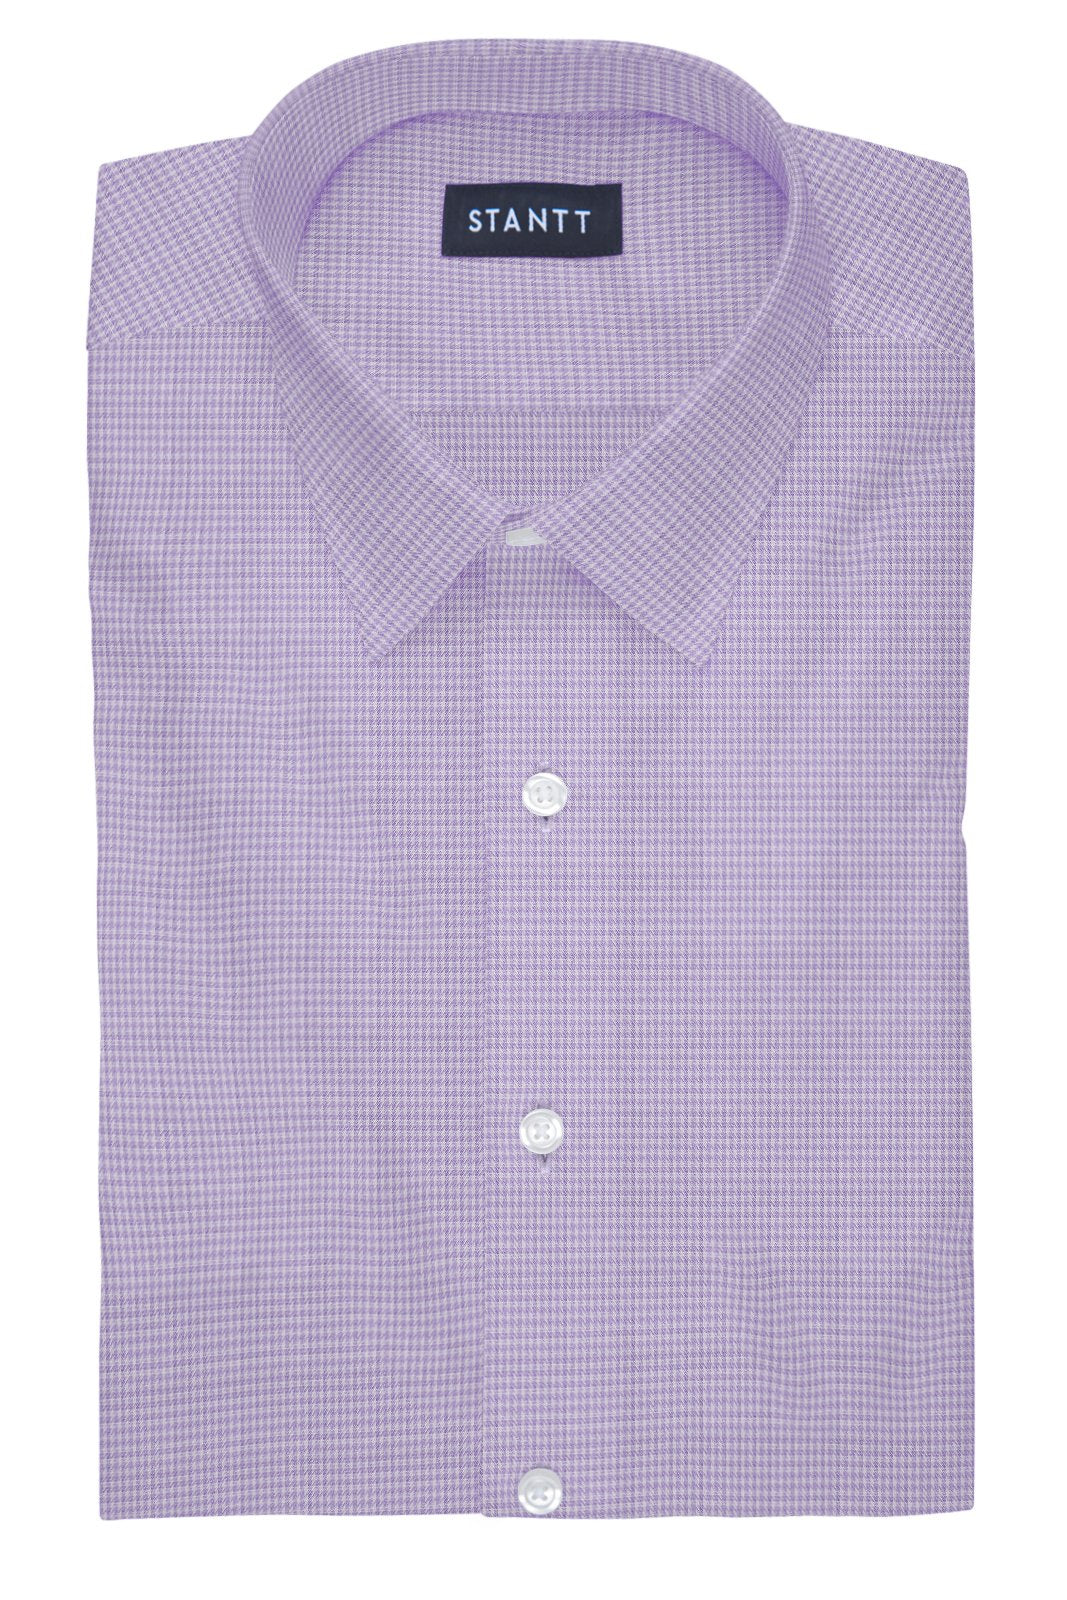 Heather Purple Houndstooth: Semi-Spread Collar, French Cuff